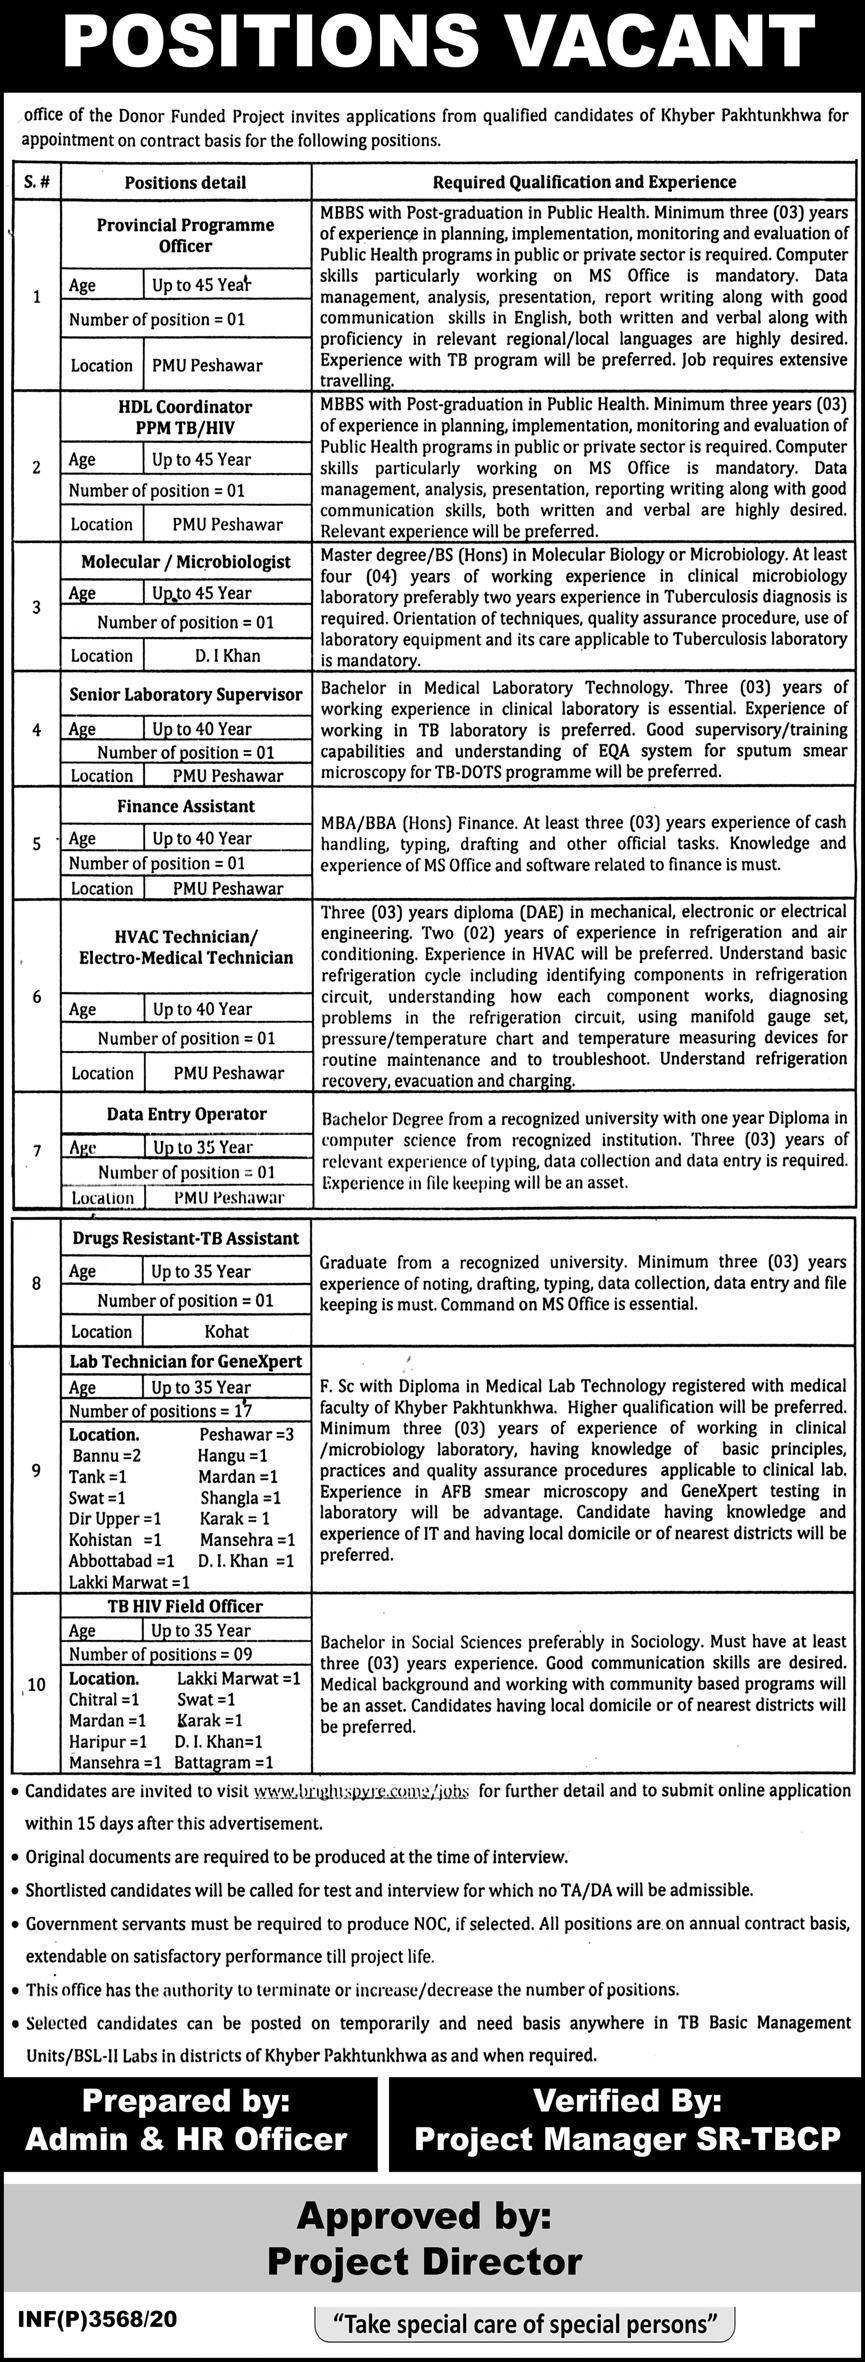 Donor Funded Project KPK Jobs Octobet 2020 Apply Online for Provincial Programme Officer HDL Coordinator, Finance Assistant, Data Entry Operator, Lab Technician, TB Hiv Field Officer Latest